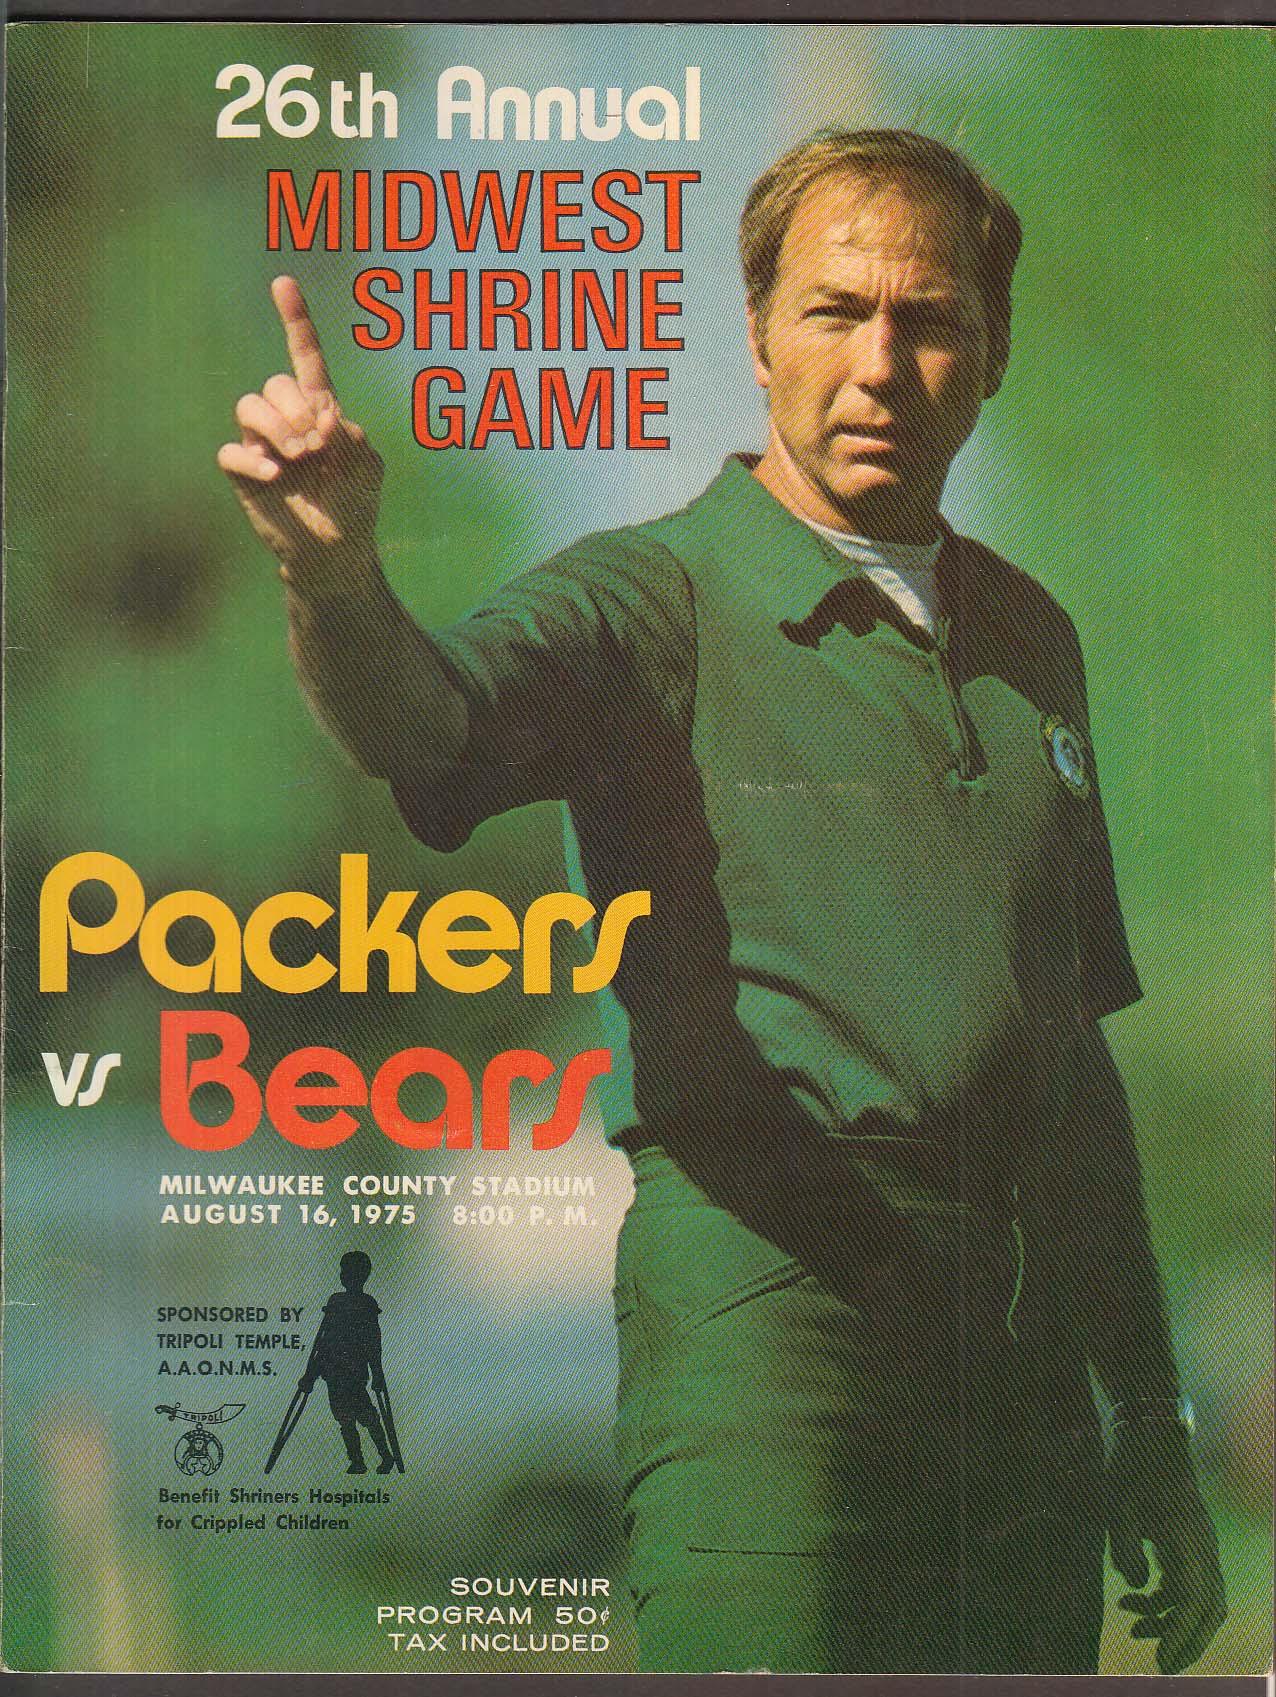 26th Annual Midwest Shrine Game Souvenir Program Packers vs Bears 8/16 1975